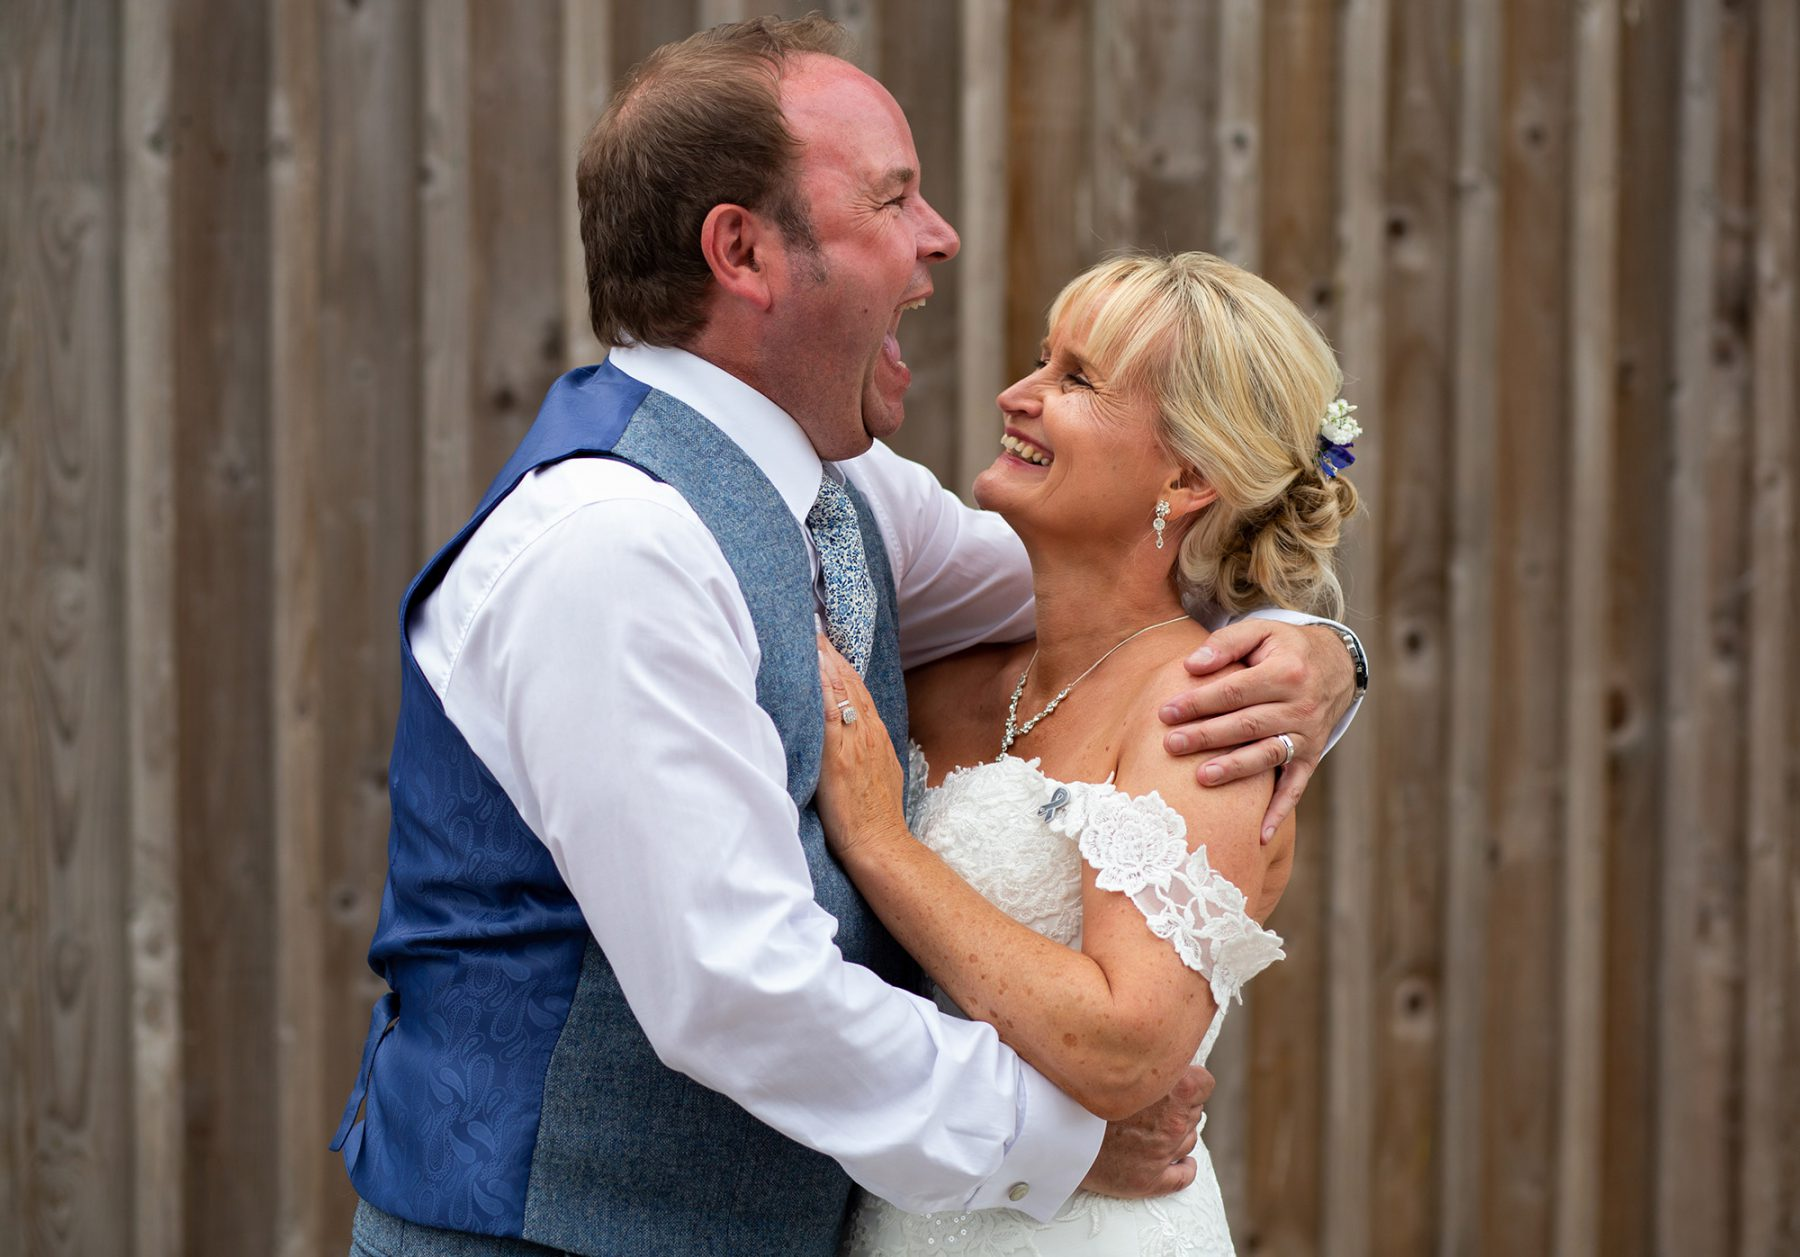 The bride and groom laughing as they hug